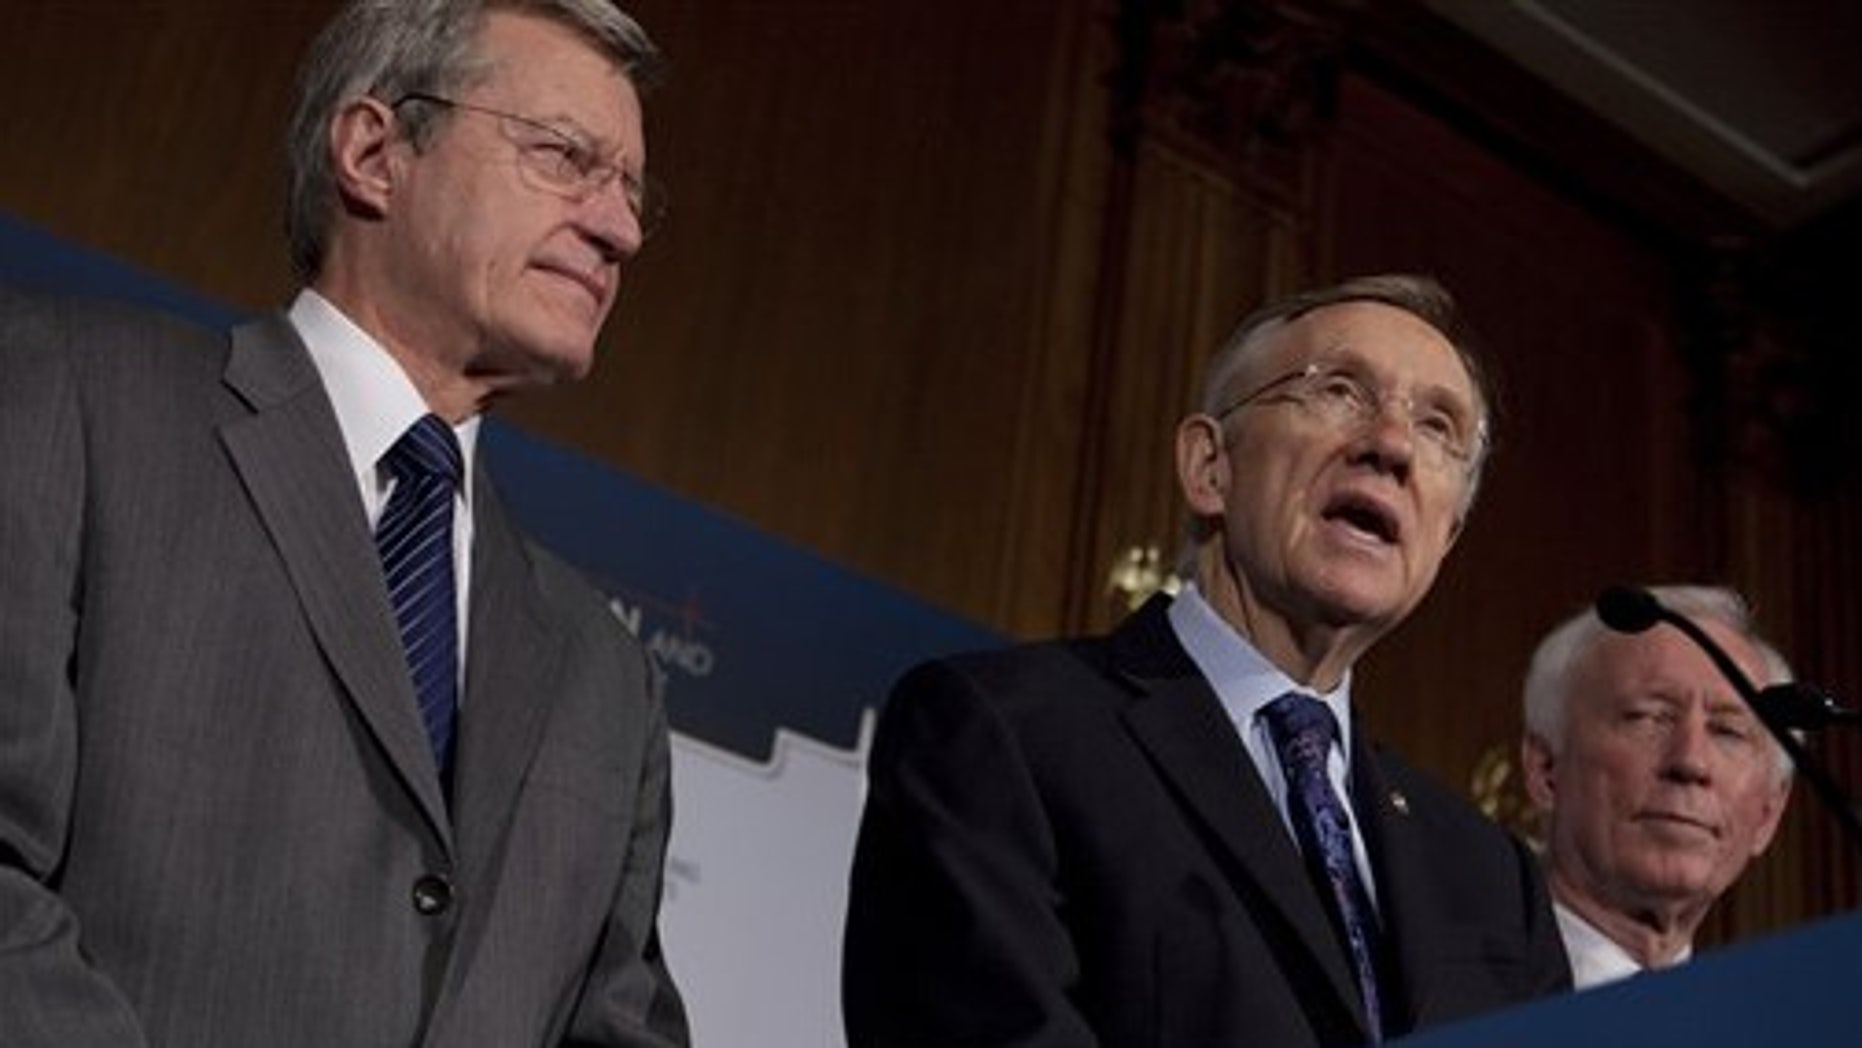 Monday: Sens. Max Baucus and Harry Reid were joined by American Medical Association President-elect Cecil Wilson to discuss the health insurance reform bill (AP Photo).